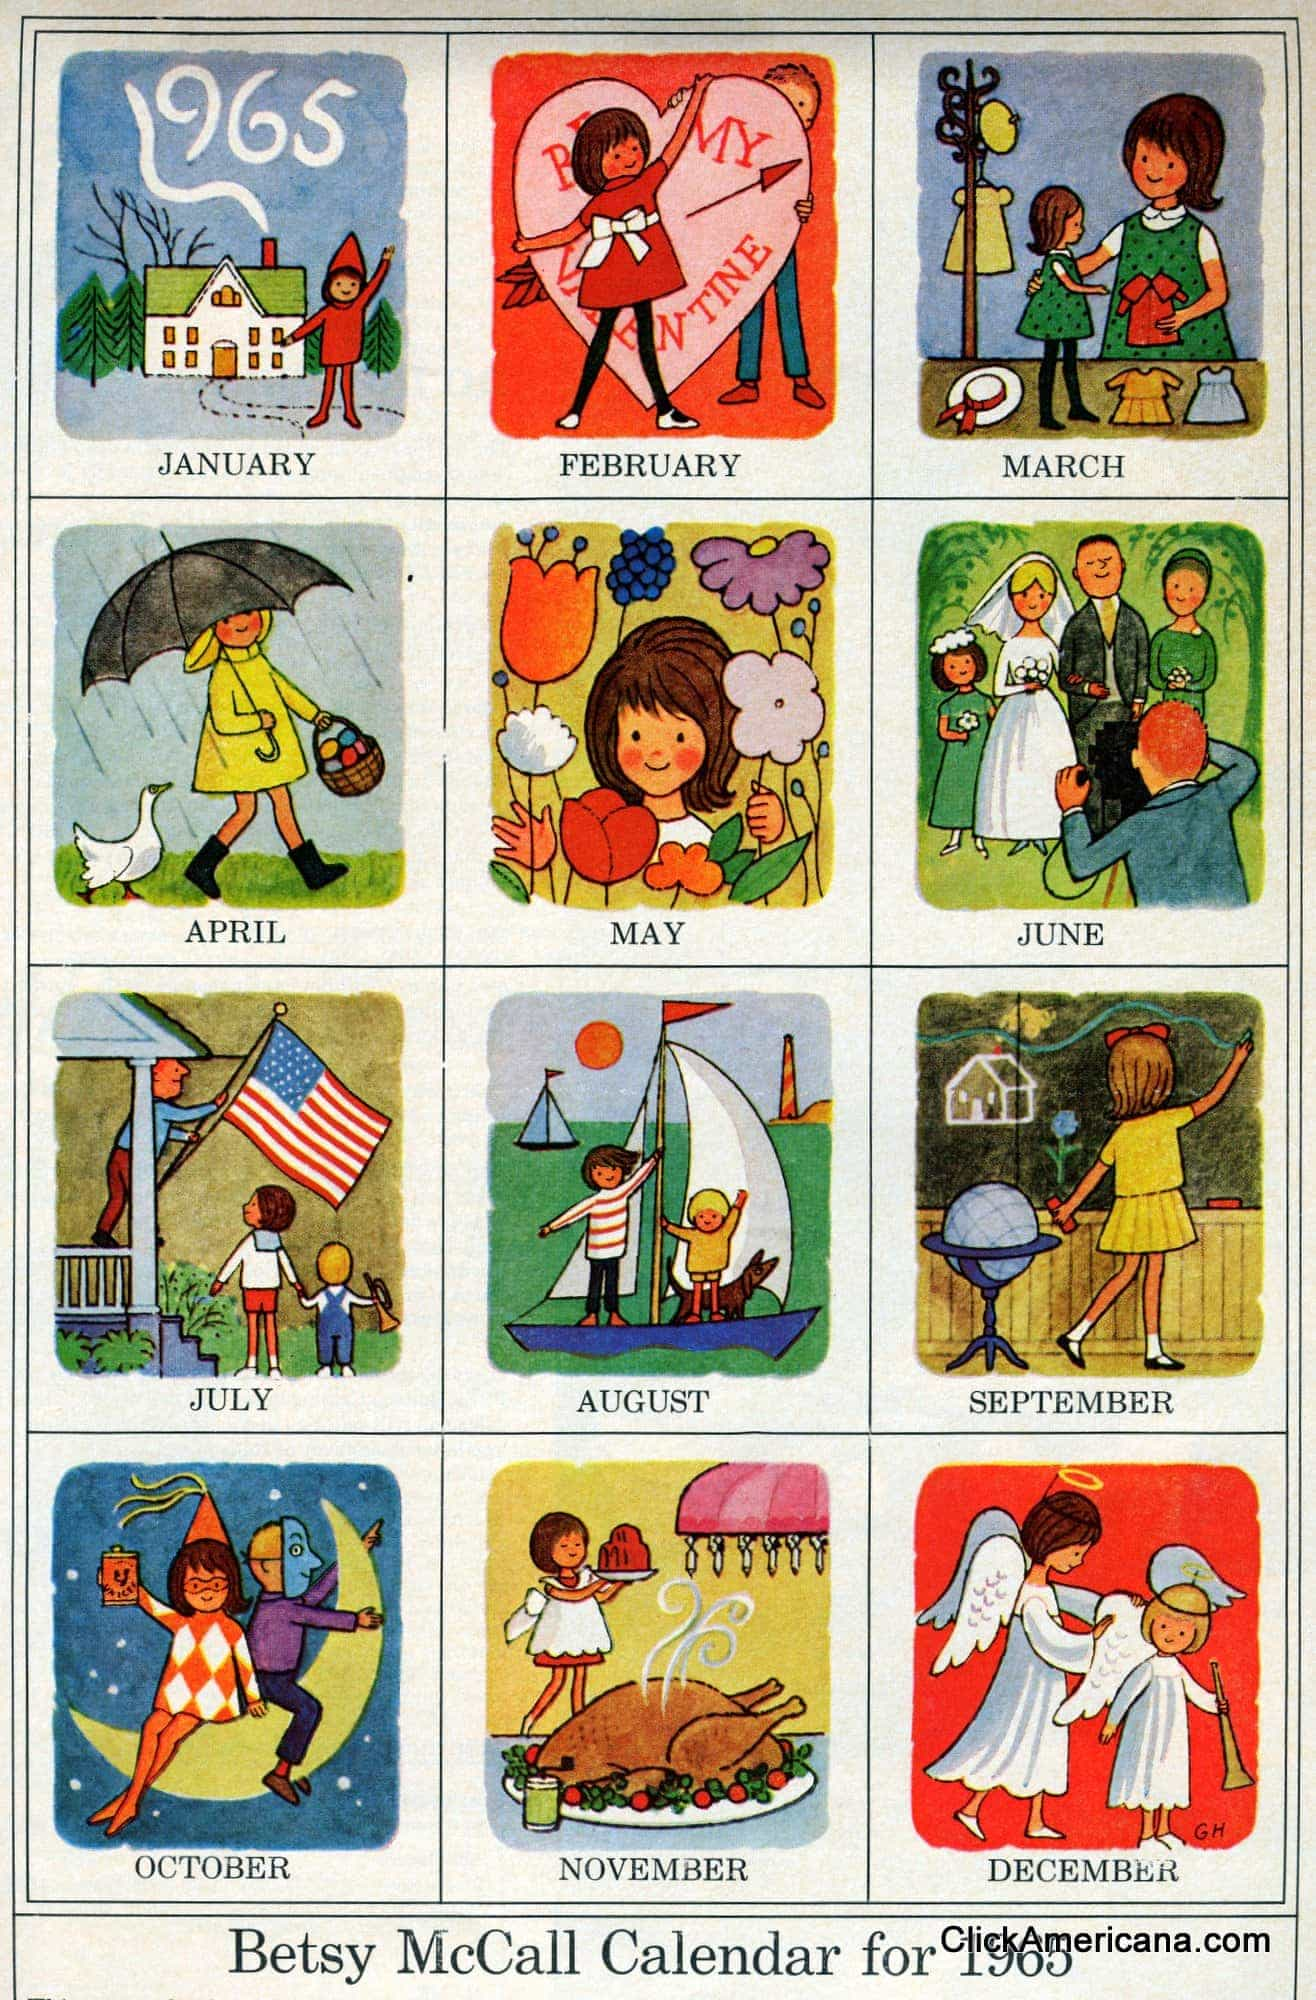 Month By Month Calendar Icons 1965 Click Americana